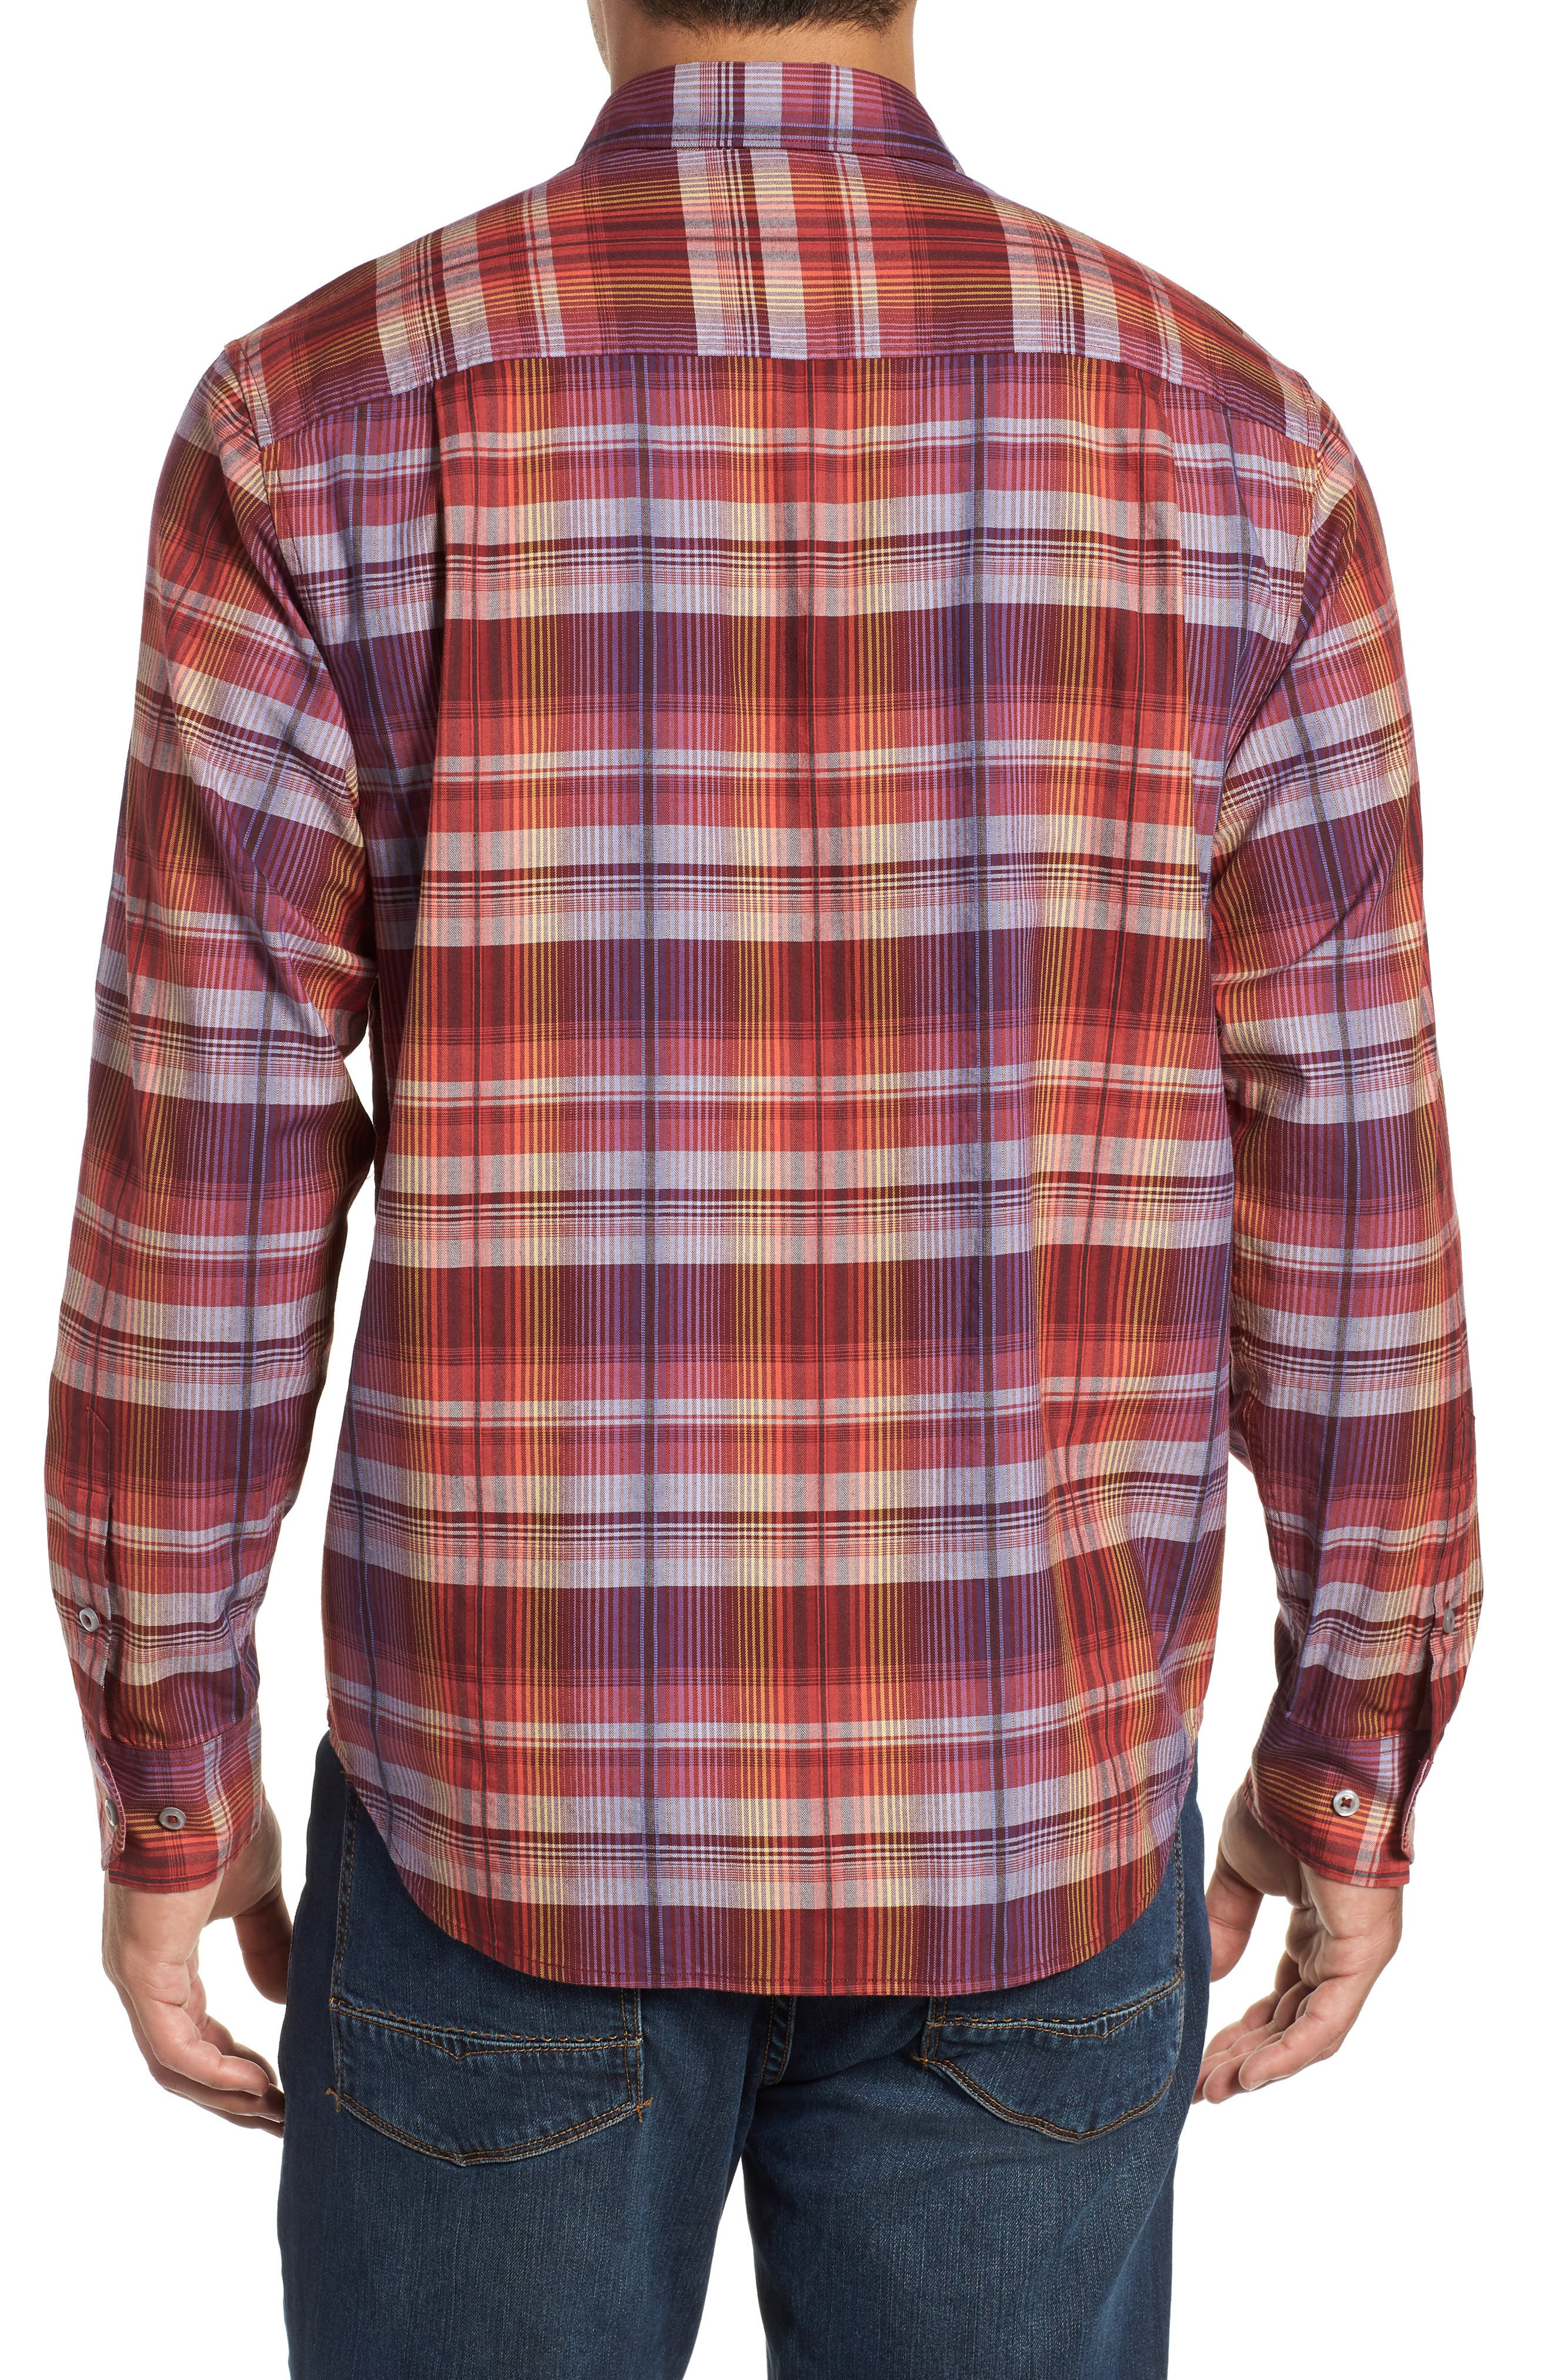 Puerto Prism Plaid Sport Shirt,                             Alternate thumbnail 3, color,                             SCOOTER RED